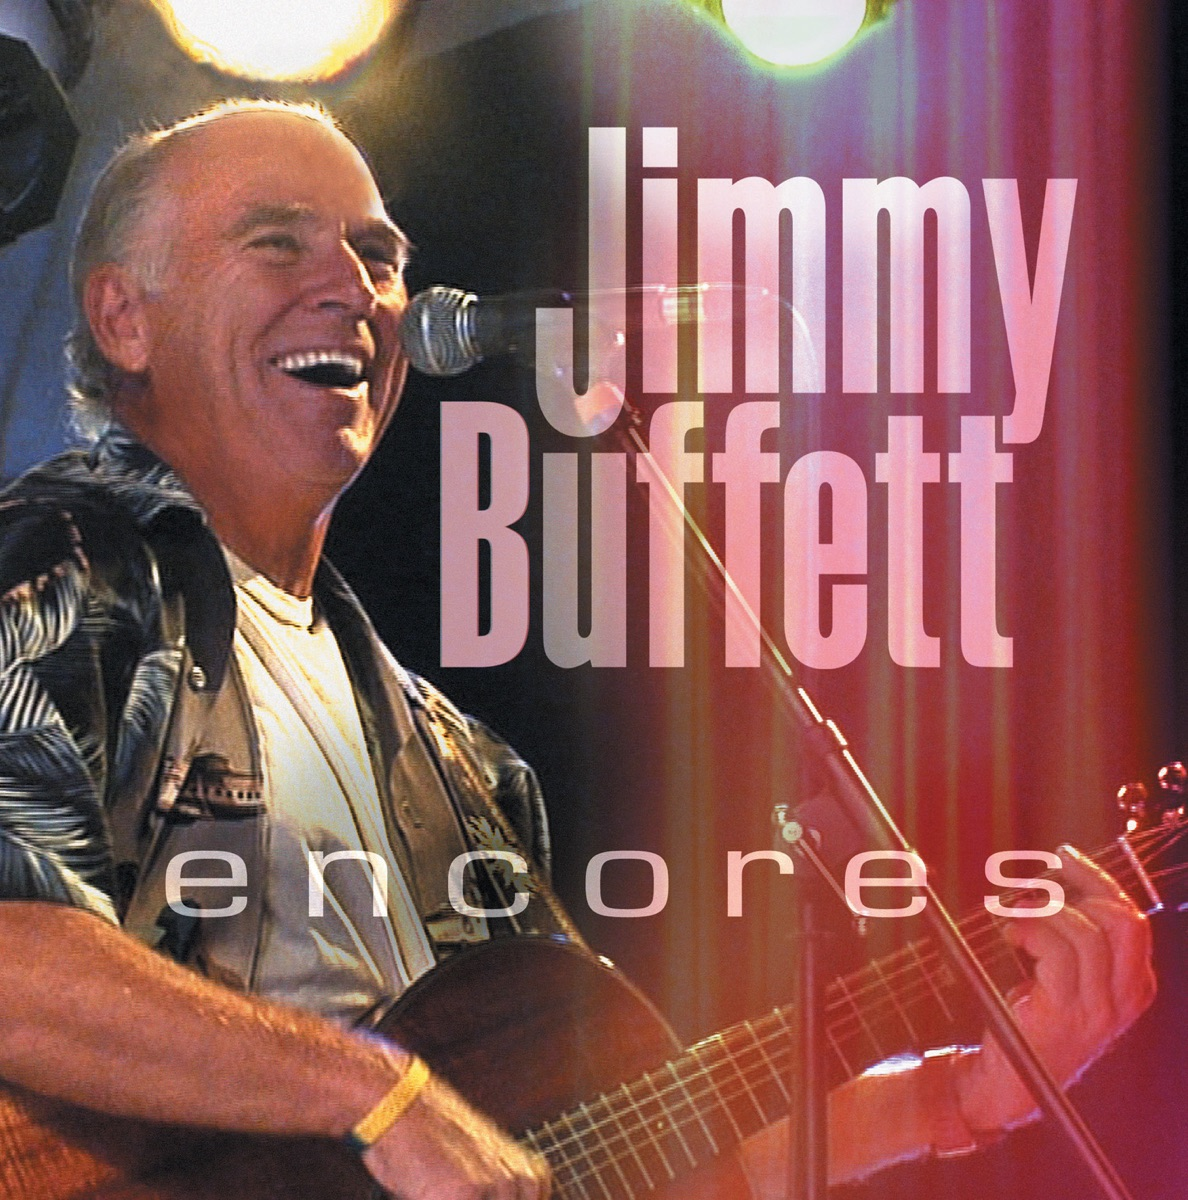 Encores Album Cover by Jimmy Buffett